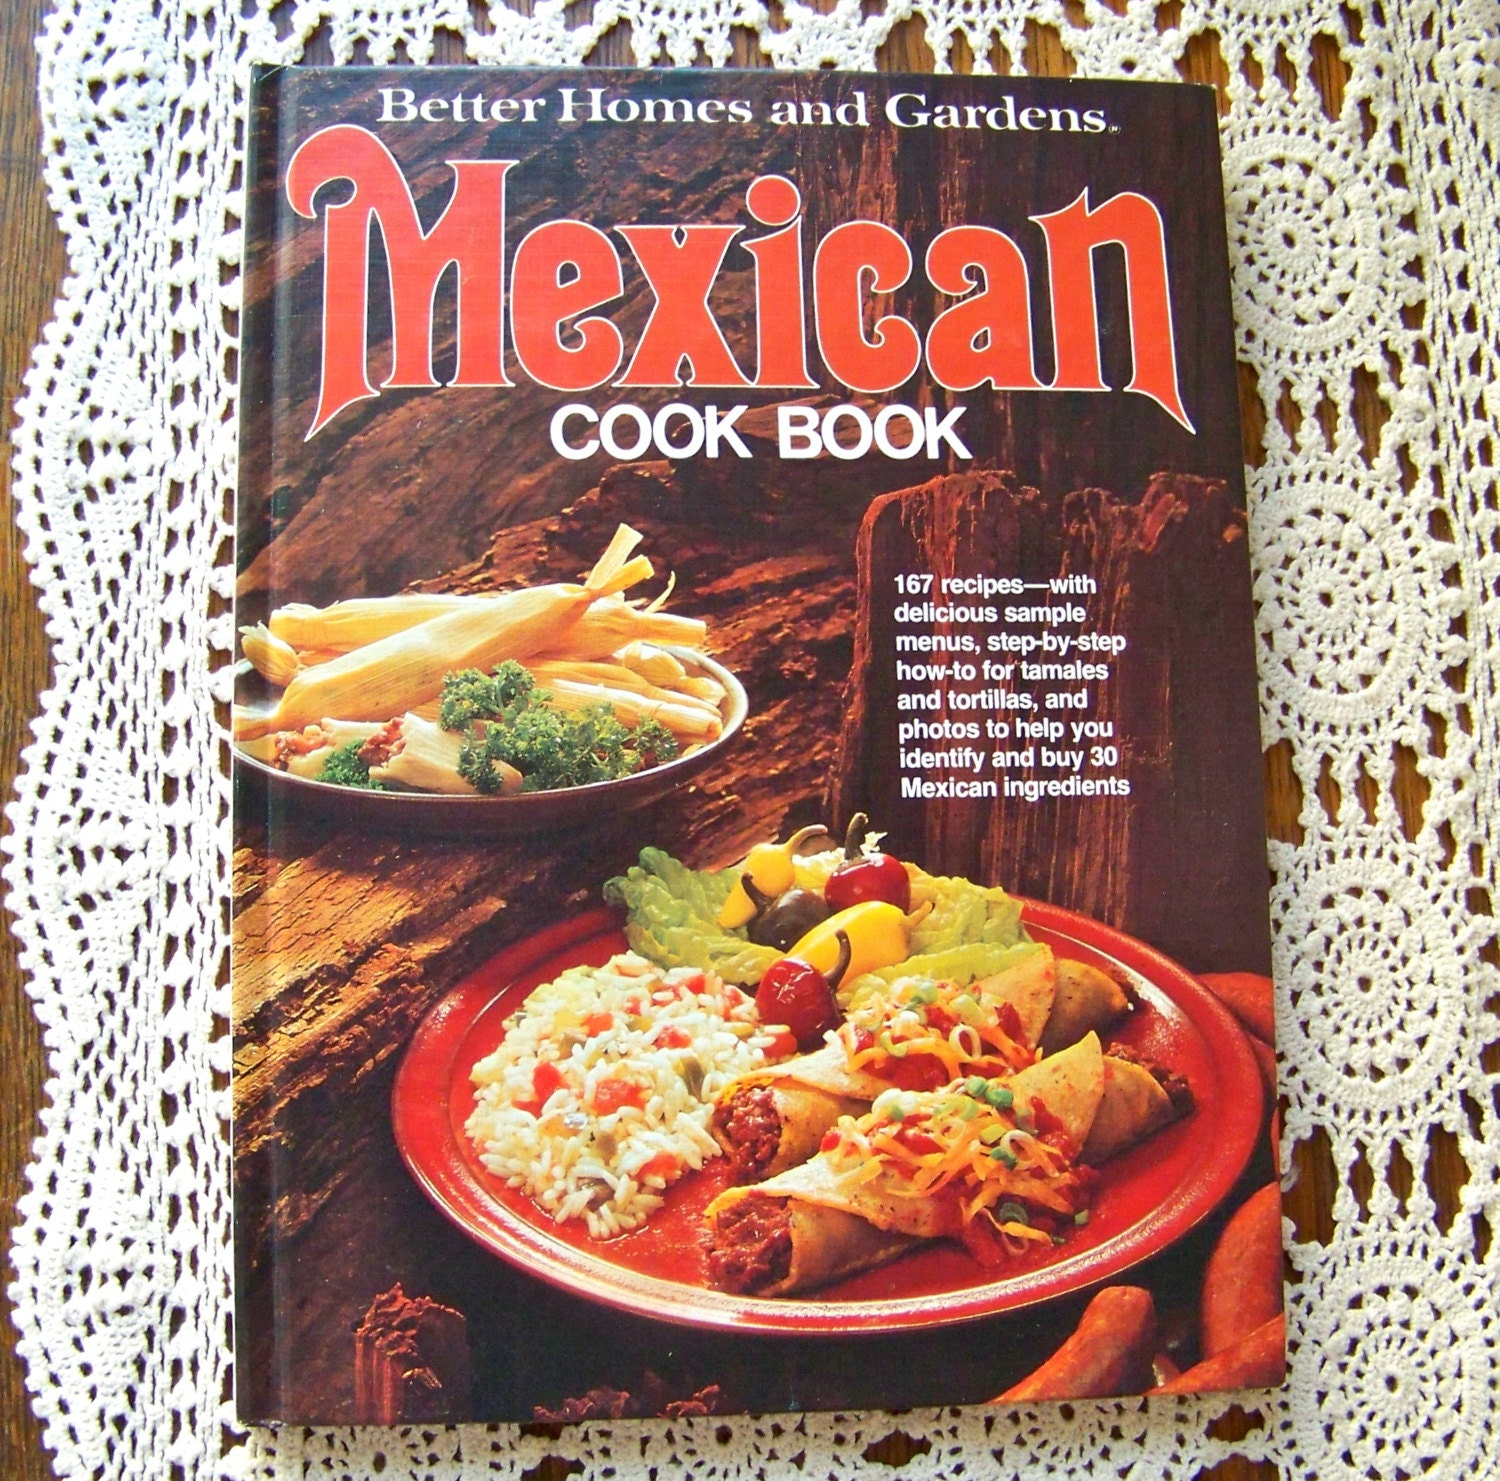 Vintage mexican cookbook better homes and gardens by - Vintage better homes and gardens cookbook ...